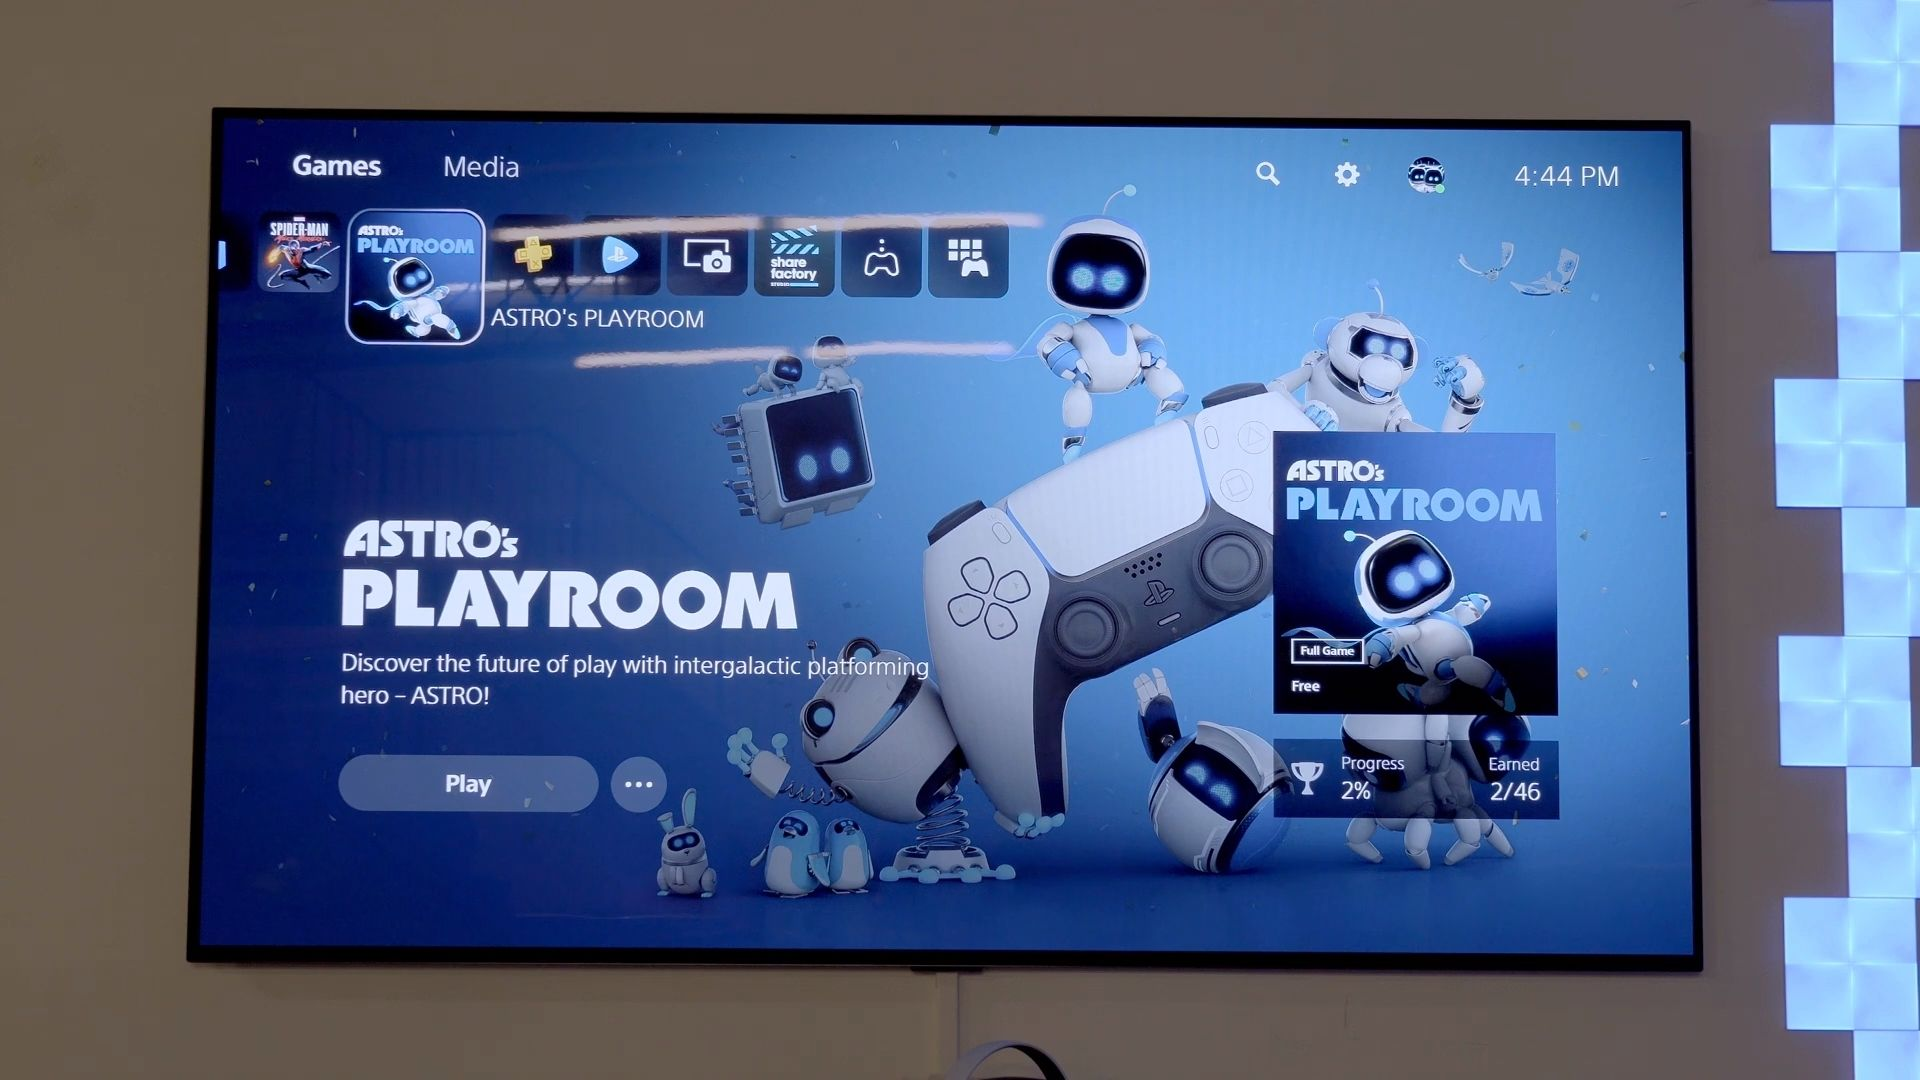 astro's playroom on the ps5